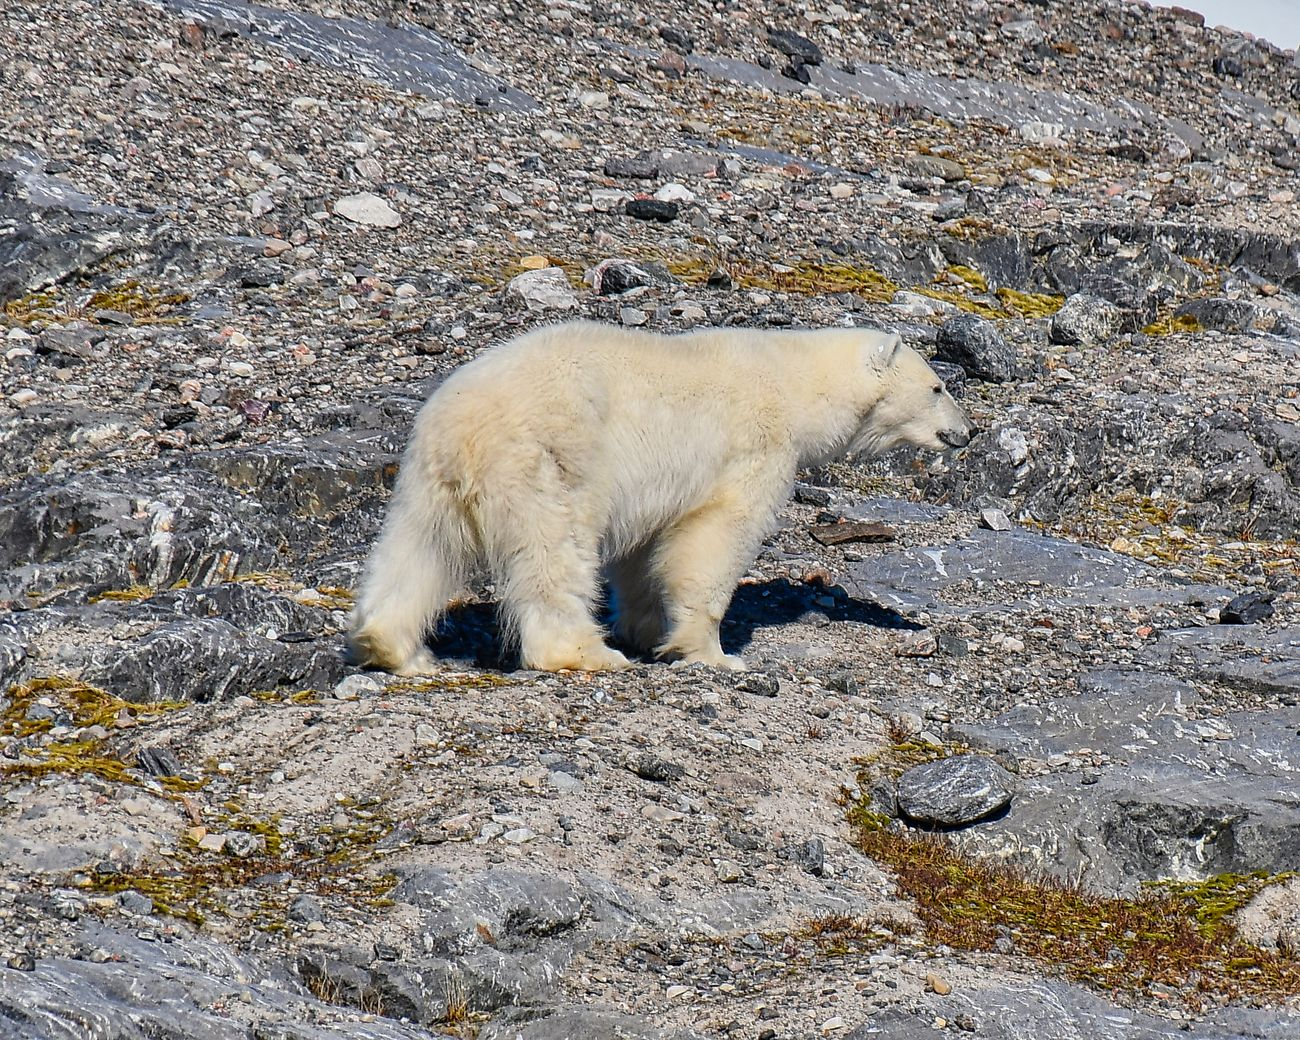 Polar Bear photgraphed on a rock in Adolfbukta bay located in Billefjorden, which is a branch of Isfjorden, situated in the central part of Spitsbergen (Svalbard) in the Arctic region.